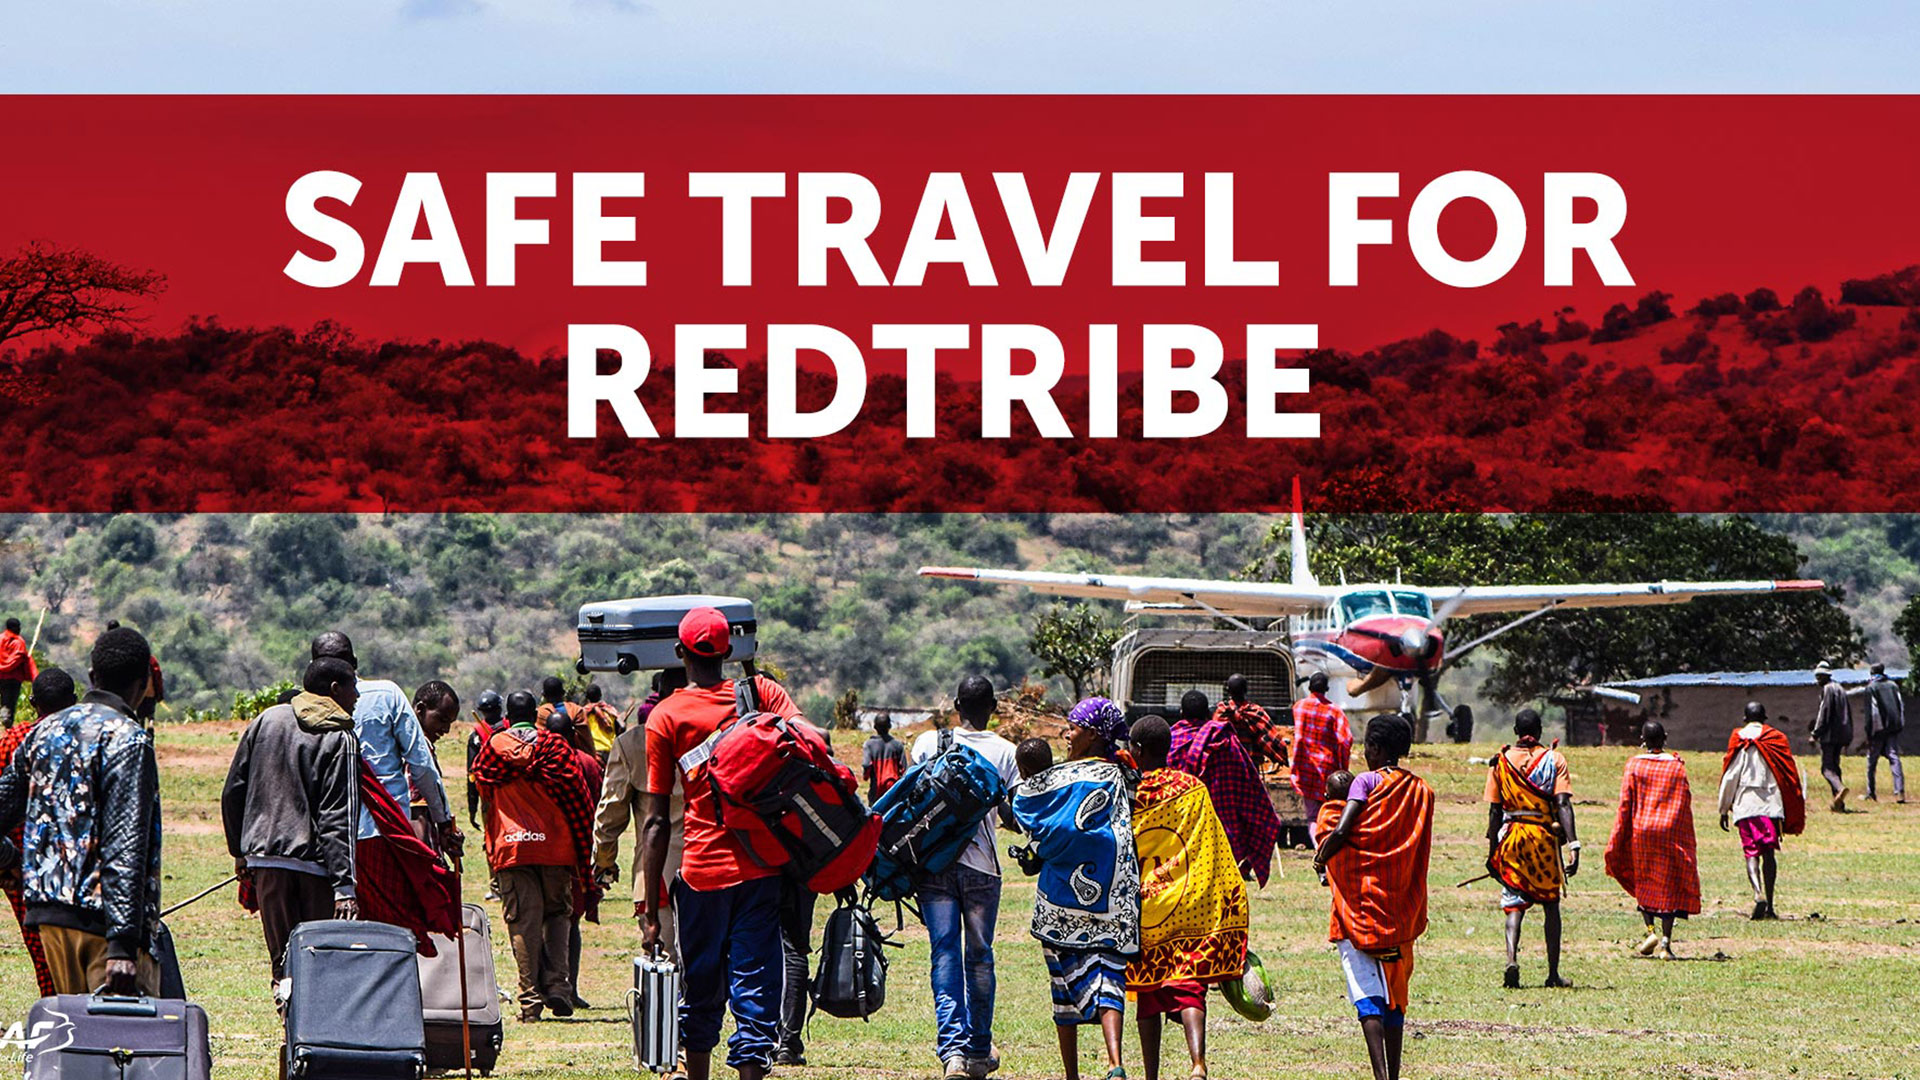 Facebook Fundraiser - Help us improve the airstrip for RedTribe